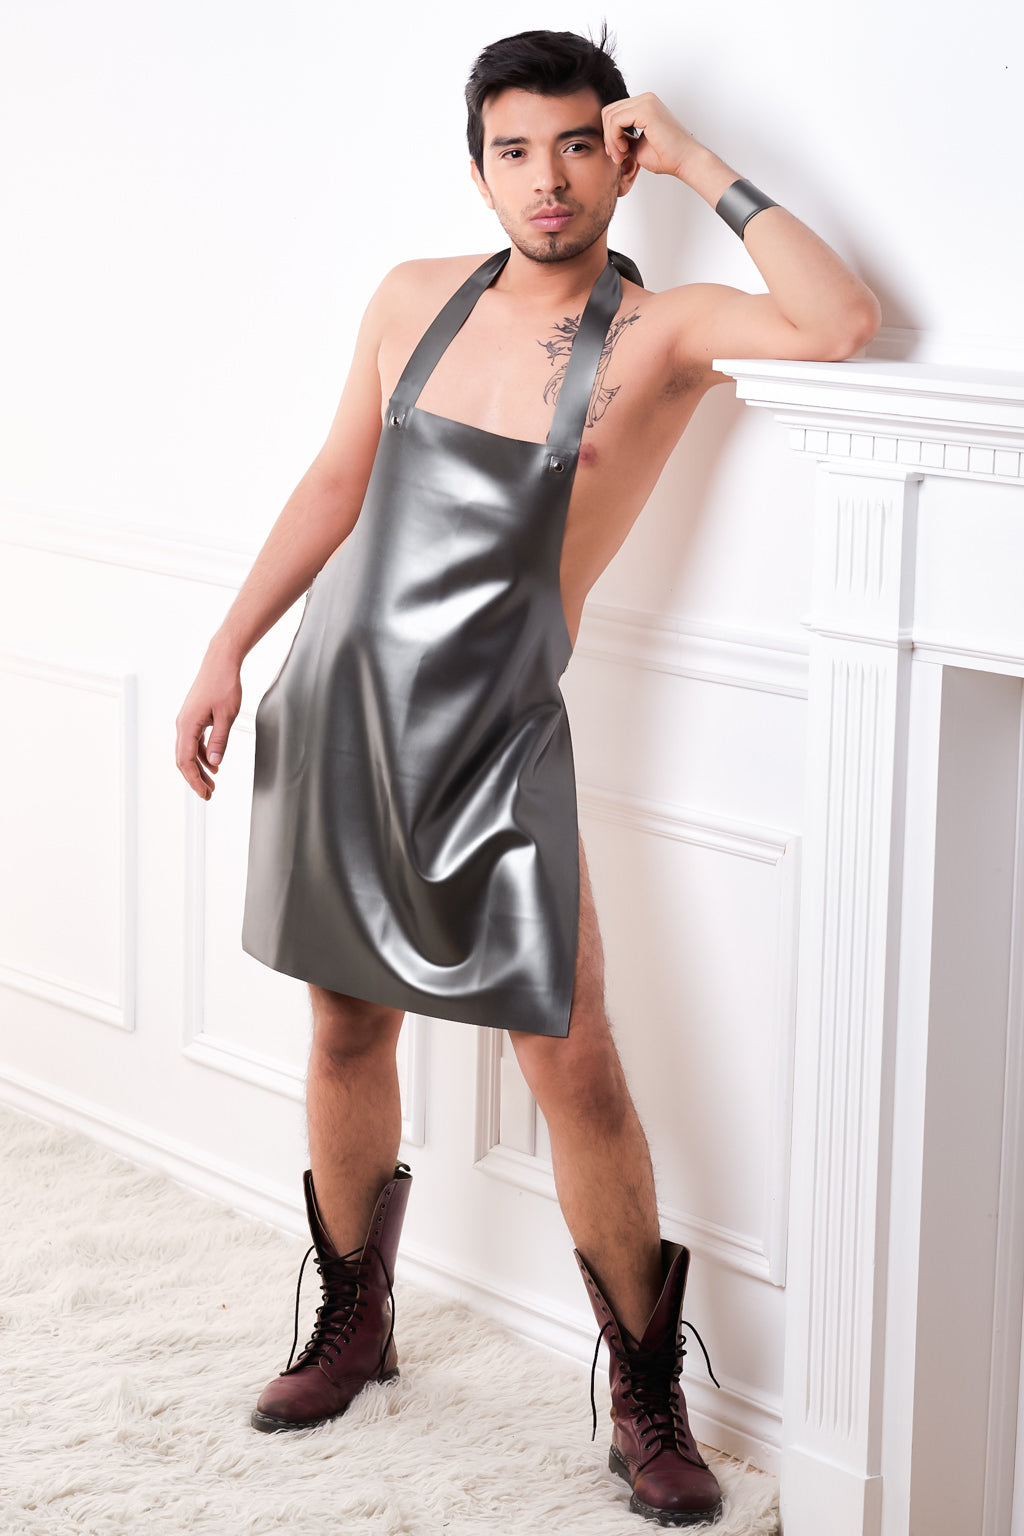 A man leaning against a fireplace wearing only a silver latex apron.